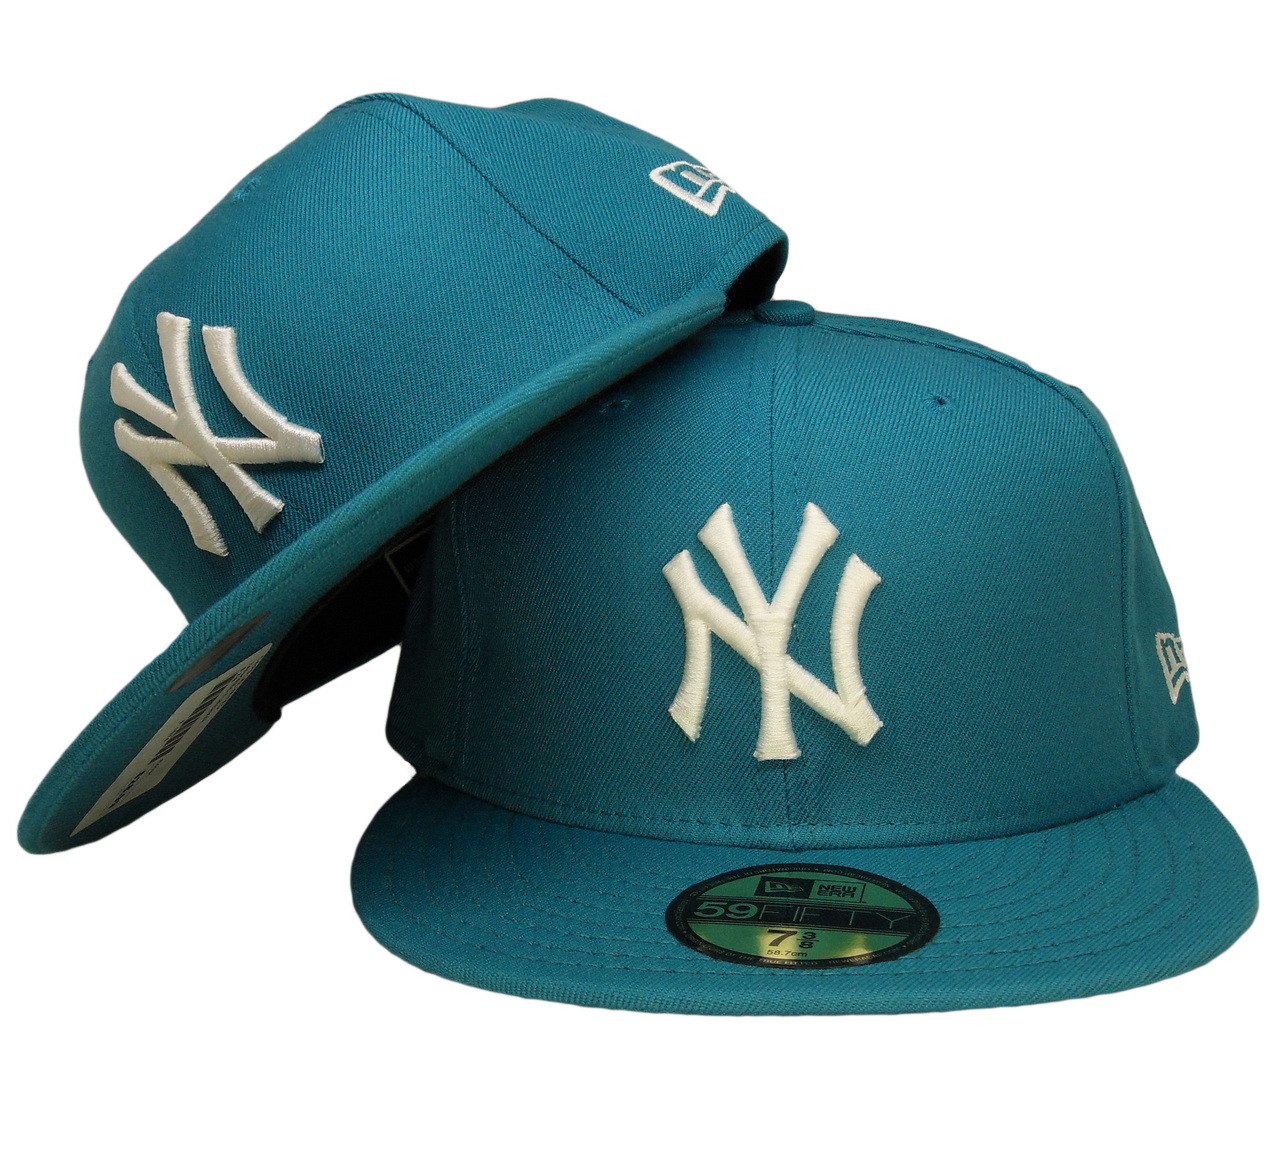 af48bc4bf9b New York Yankees New Era 59Fifty Basic Fitted Hat - Turquoise